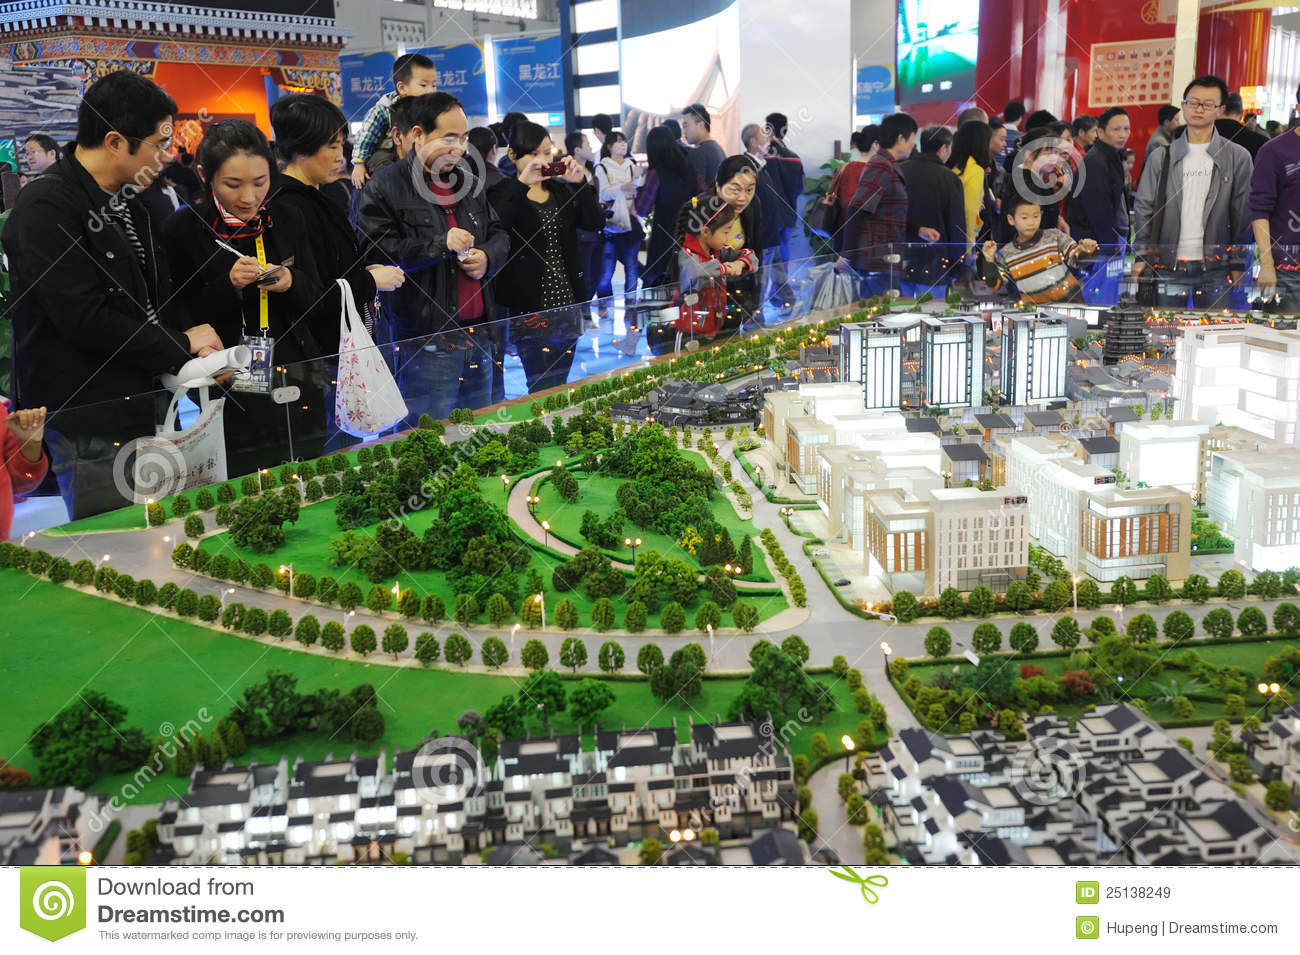 Chinese people buying house